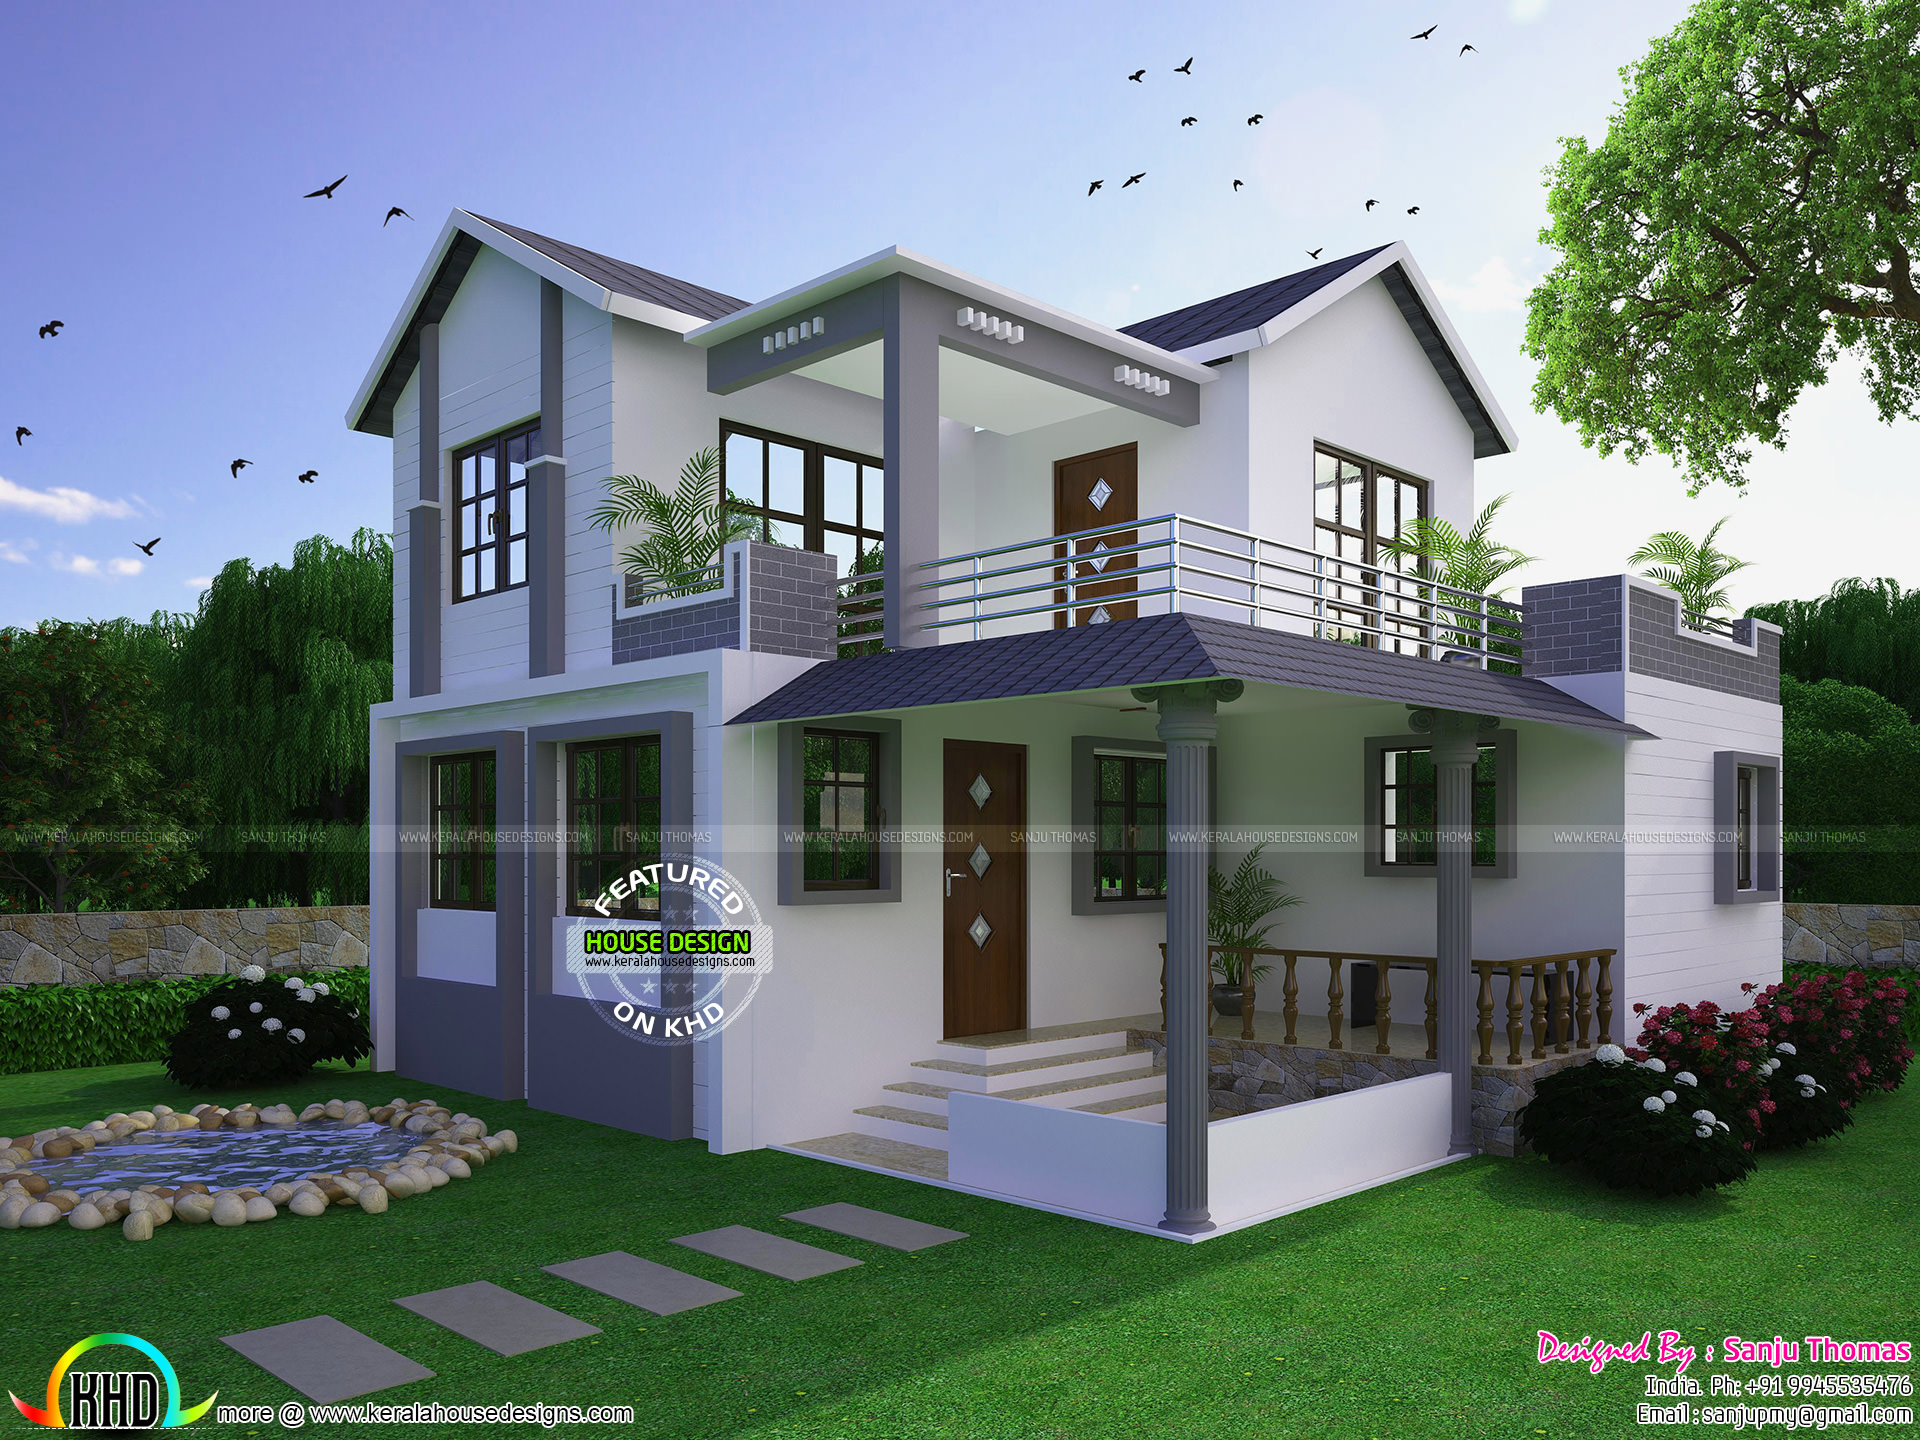 Square feet details ground floor 890 sq ft first floor 630 sq ft total area 1600 sq ft no of bedrooms 3 design style modern